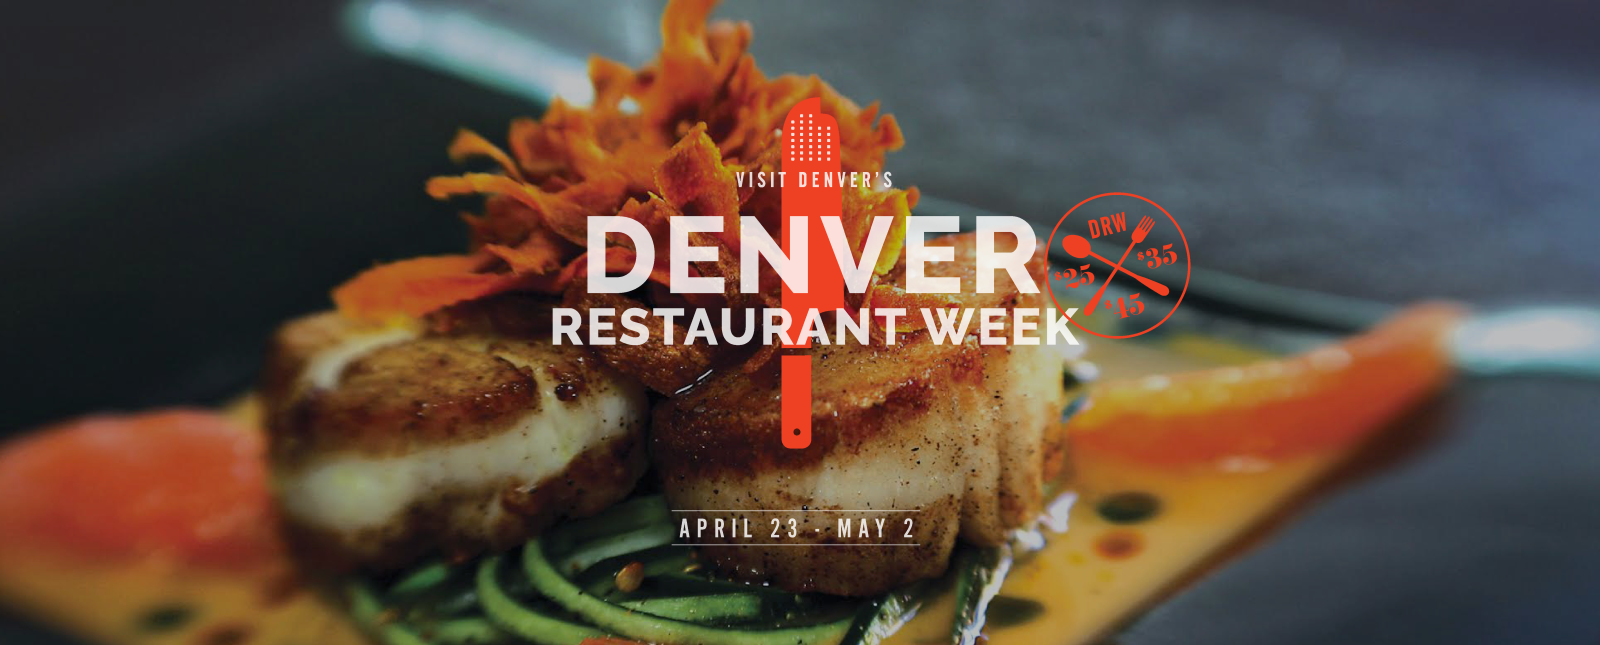 Denver Restaurant Week 2021